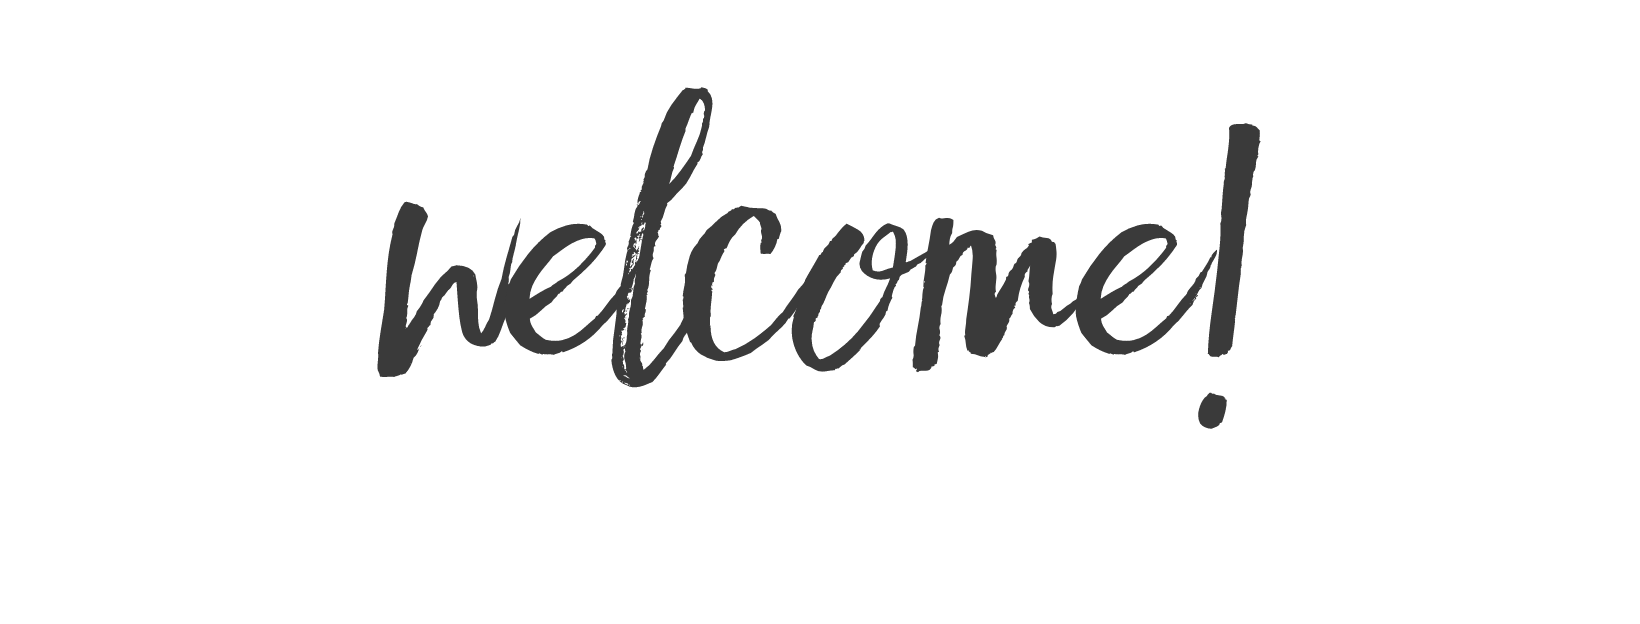 Copy of Welcome! (4).png